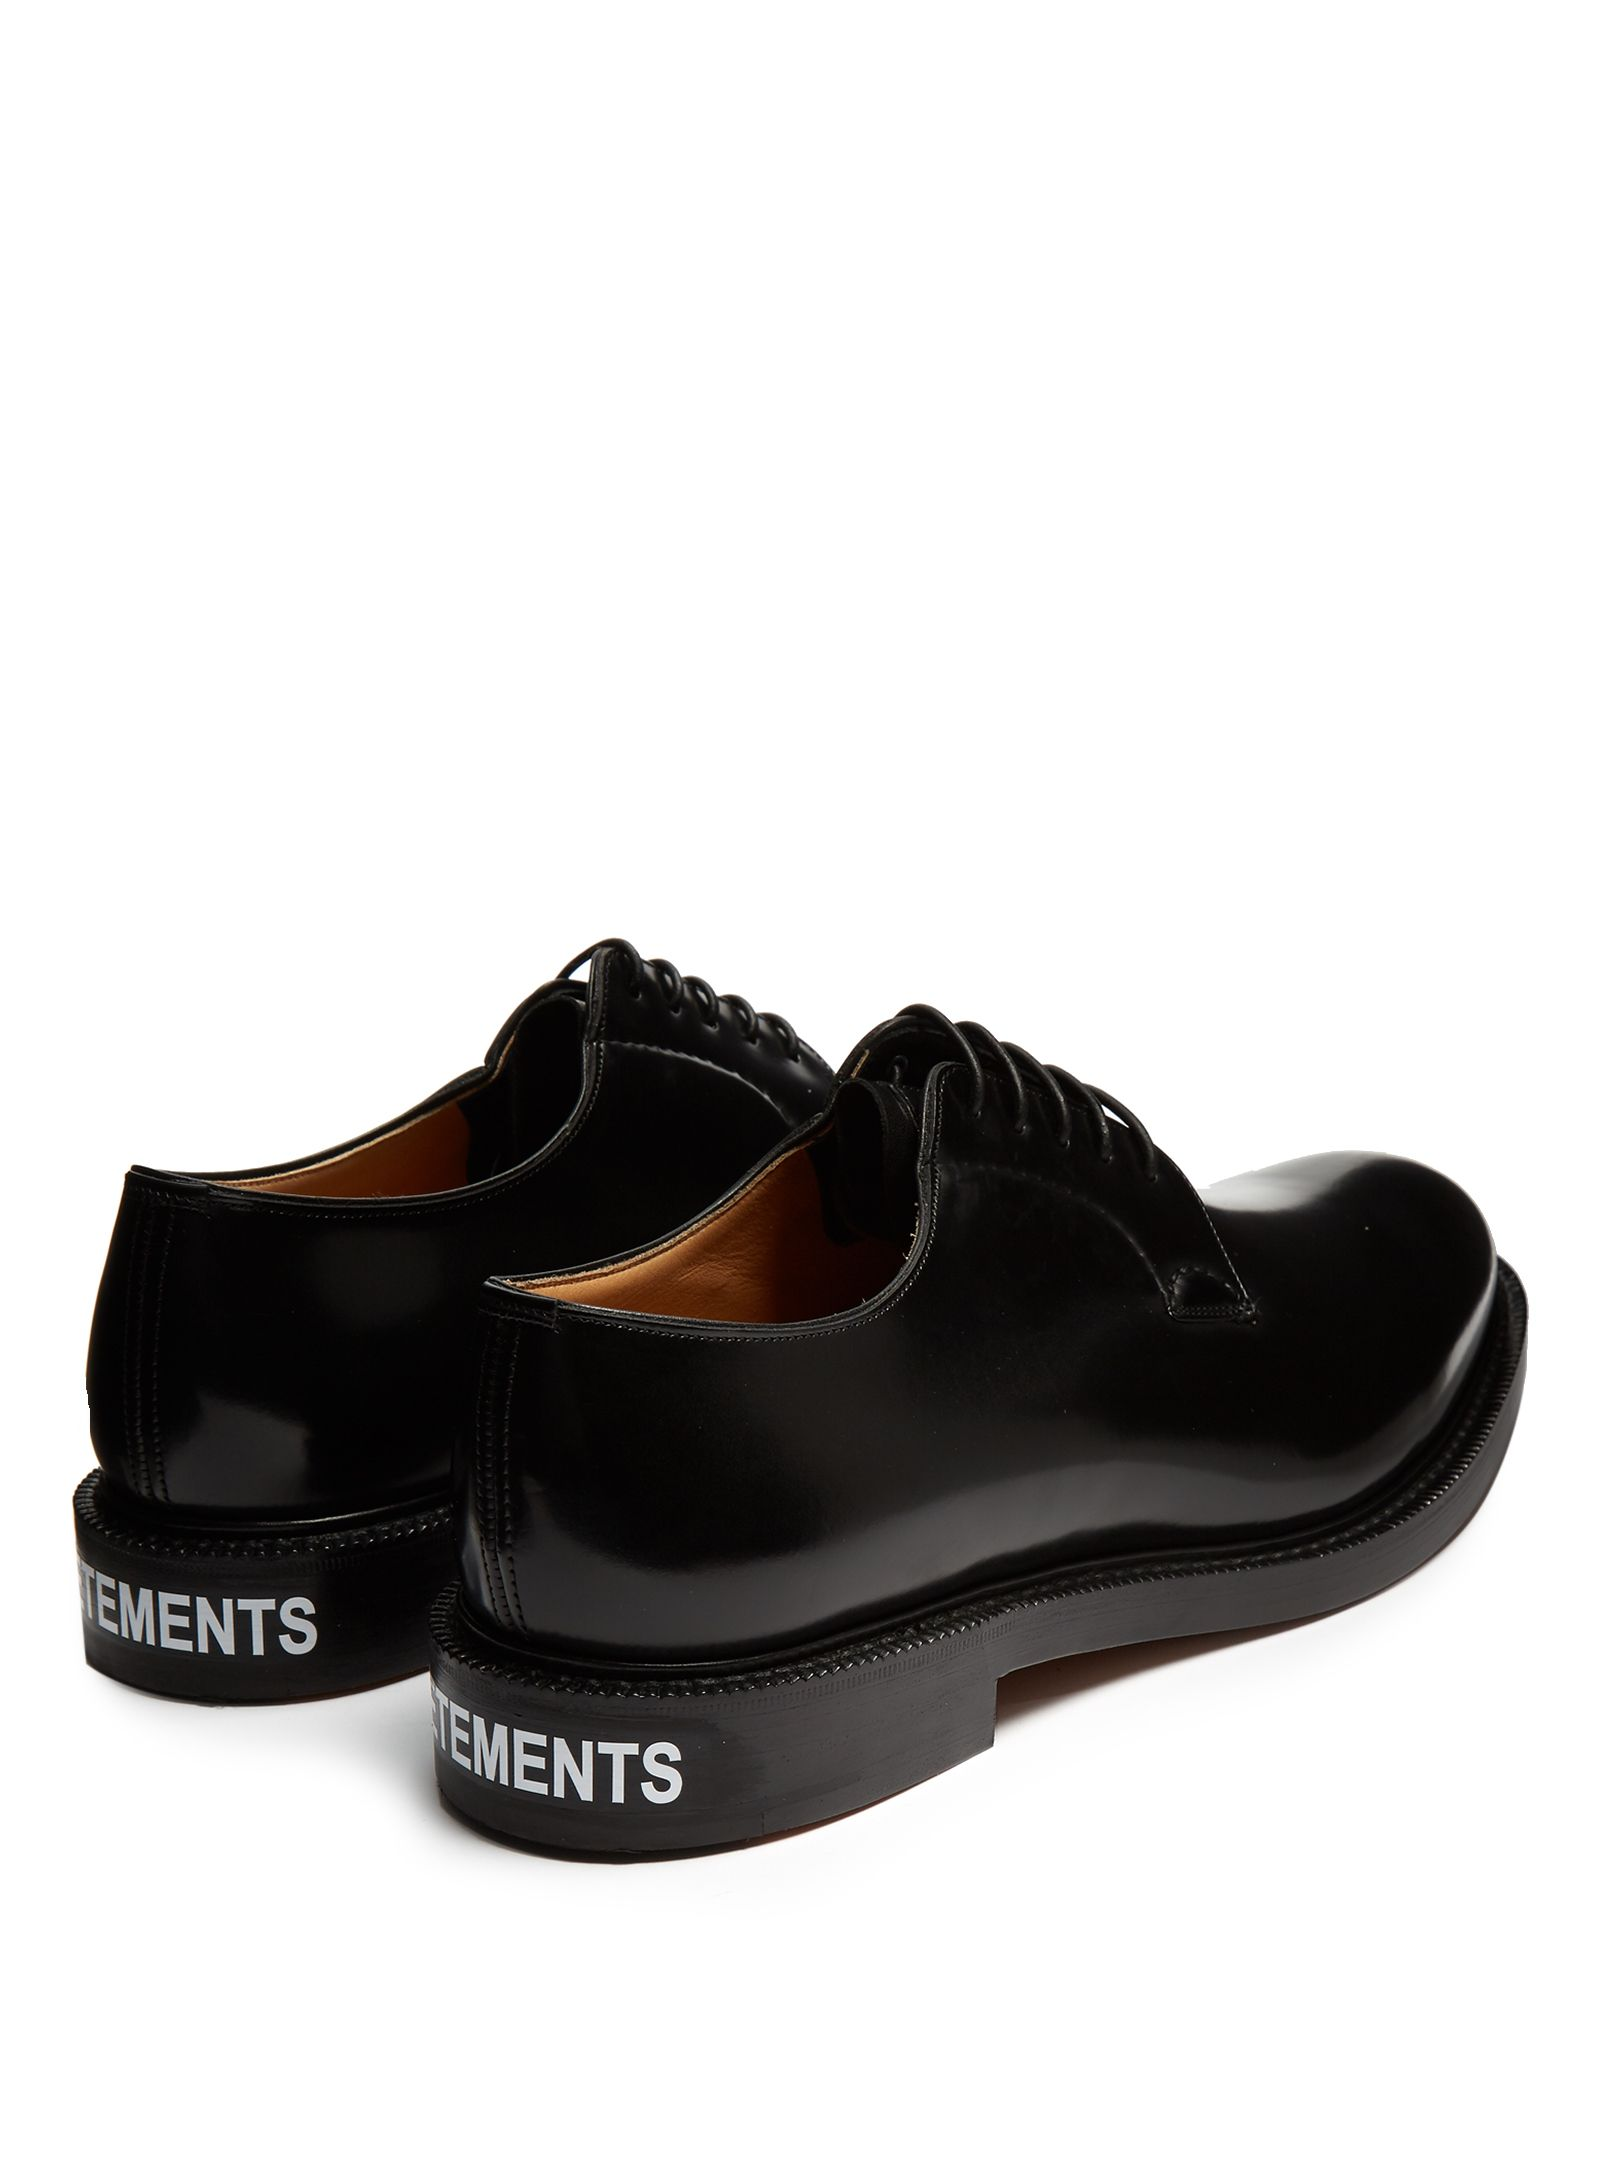 acad4944ba7 Click here to buy Vetements X Church s leather derby shoes at  MATCHESFASHION.COM